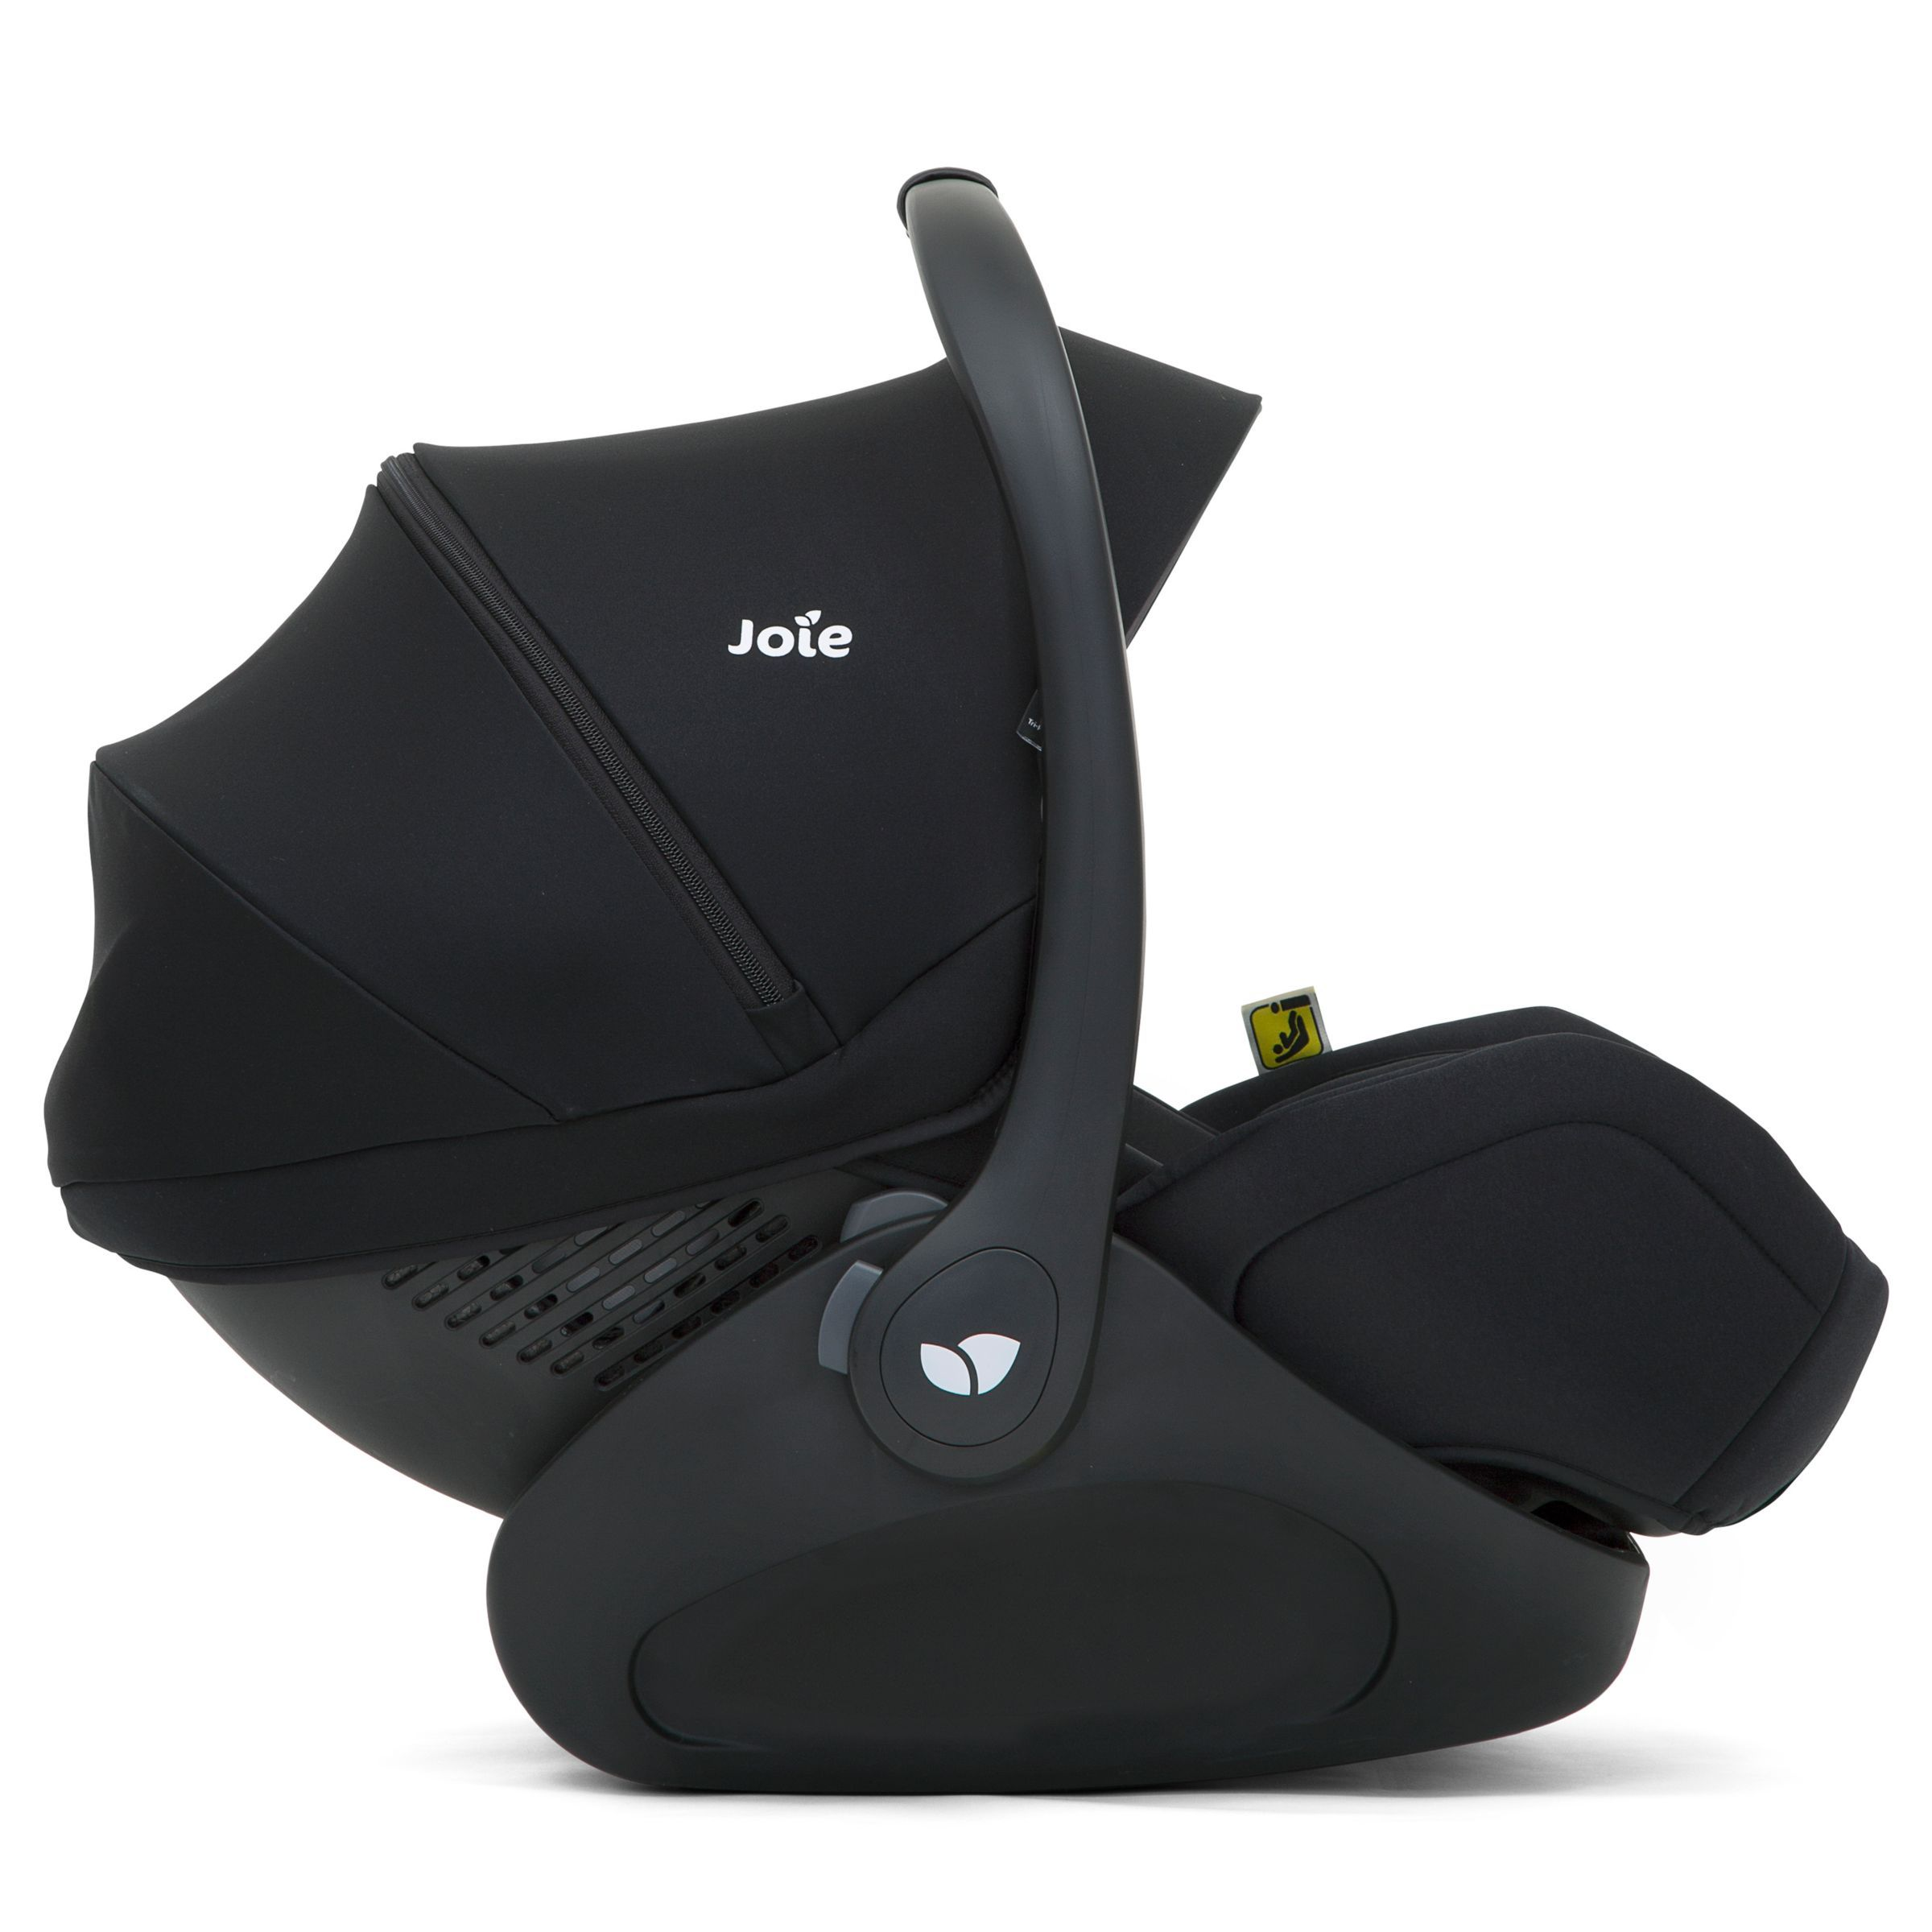 Joie Baby iLevel Group 0+ Baby Car Seat, Coal Joie baby